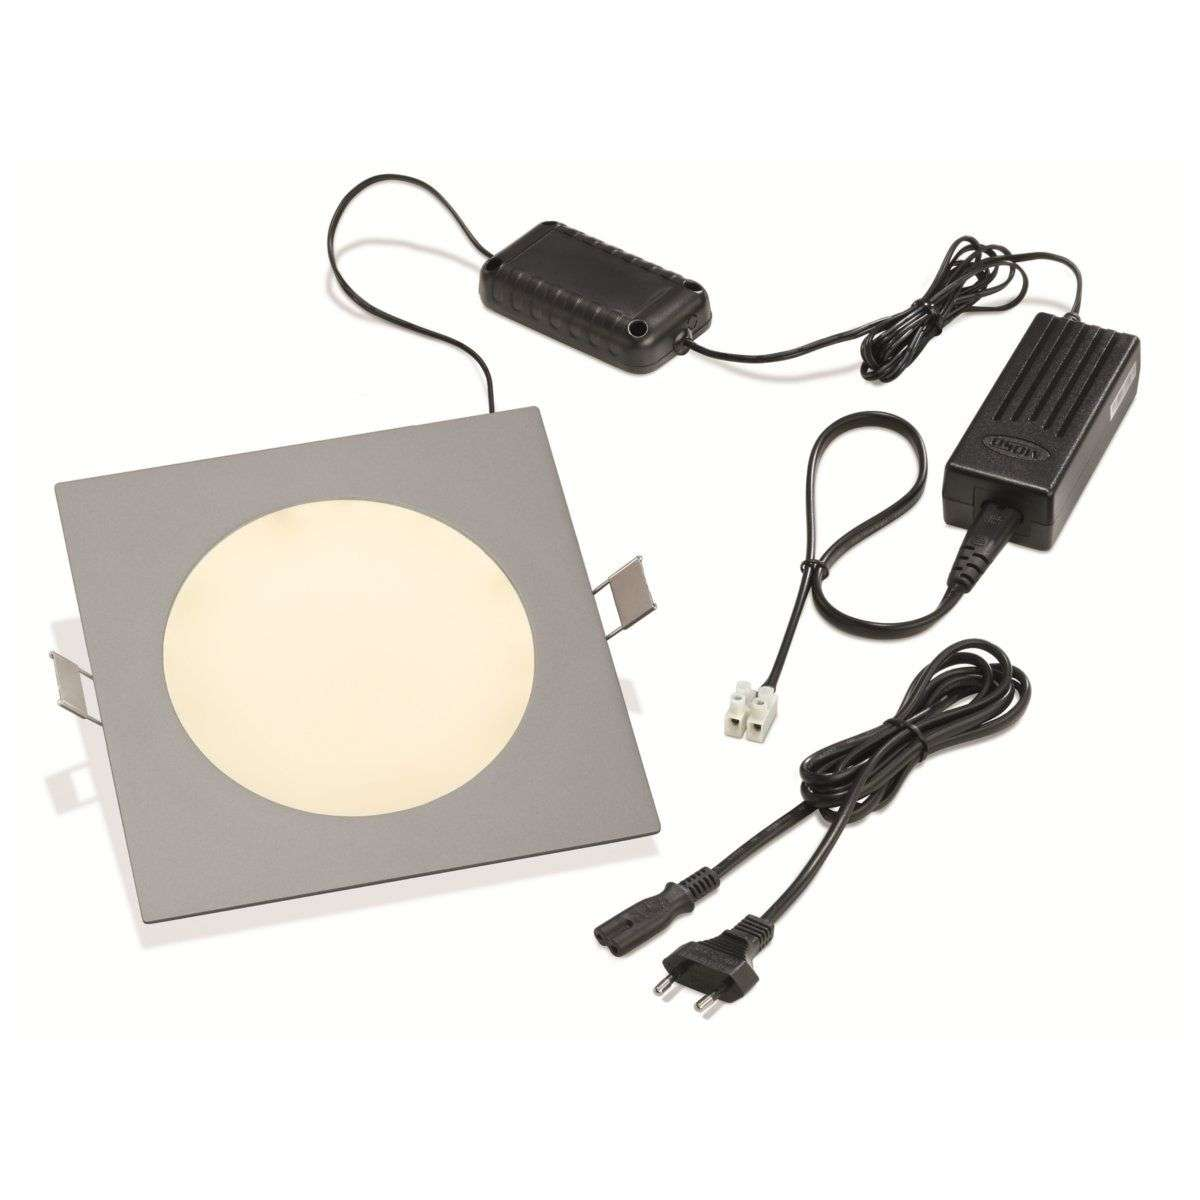 Led-inbouwlamp PRINCE, vierkant 11W-3012182X-31